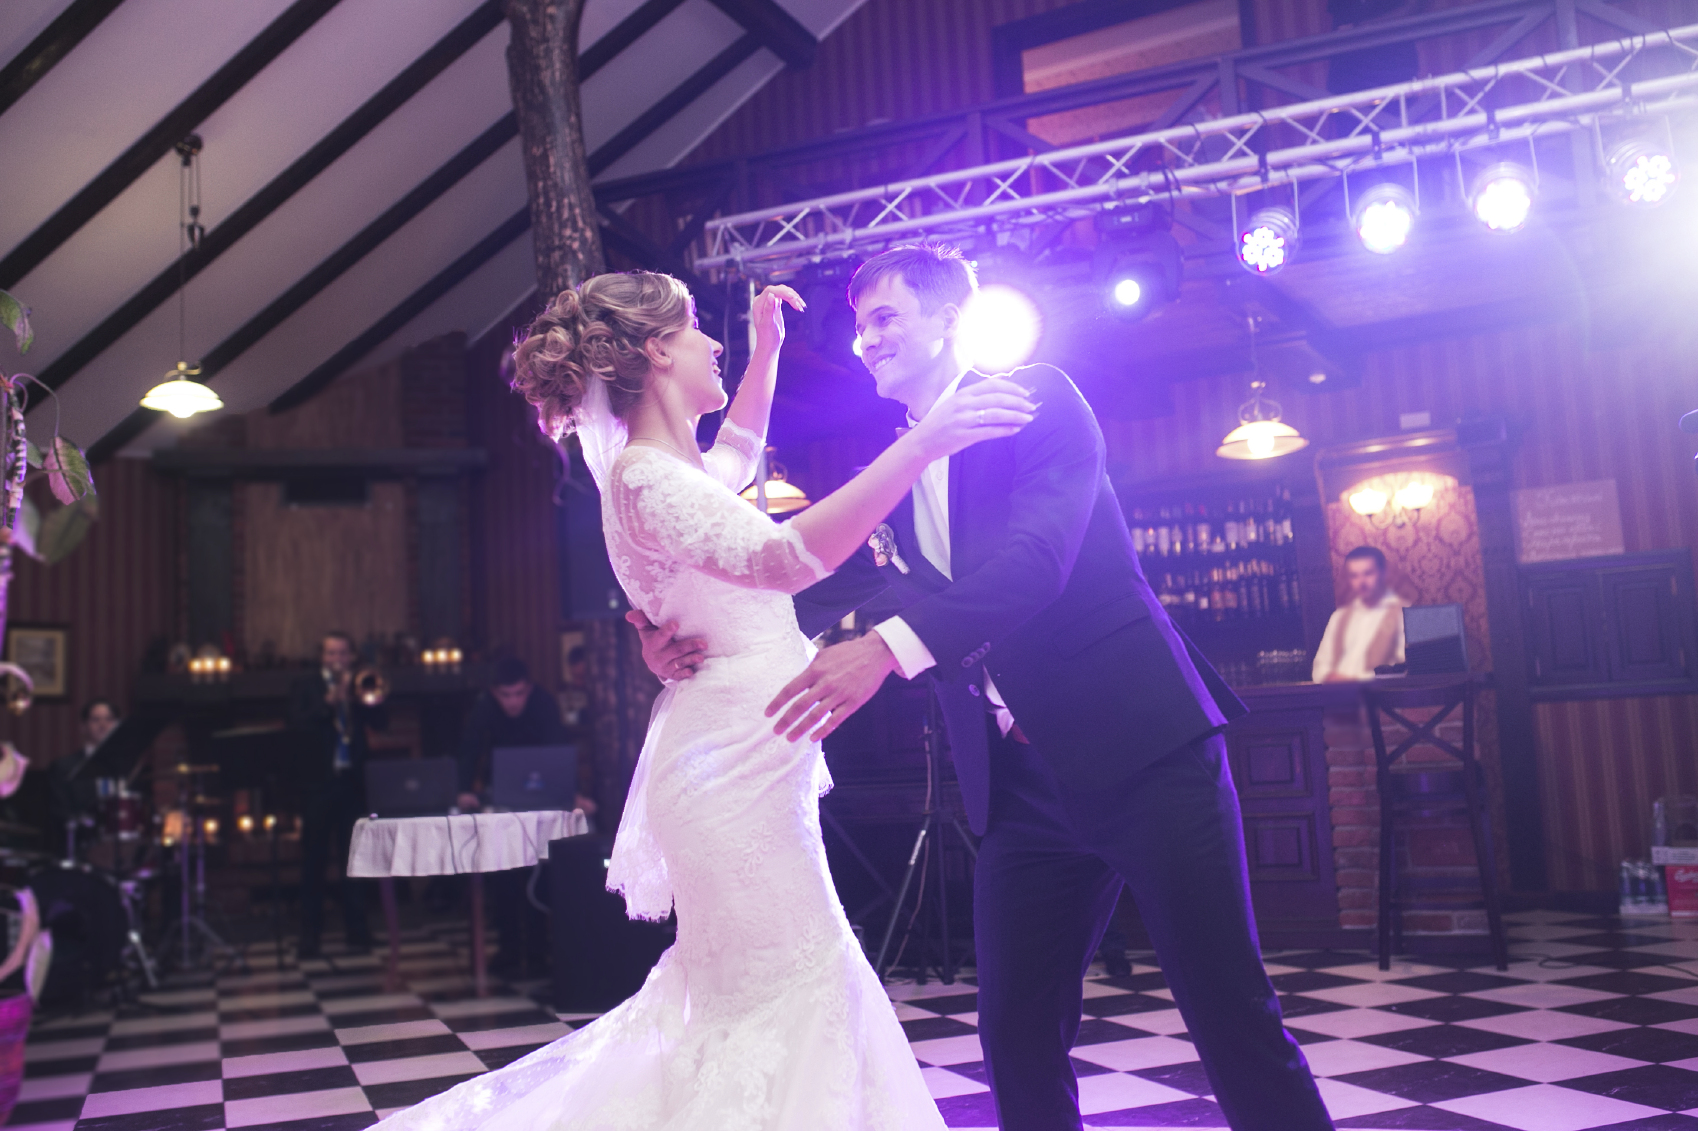 Taking dance lessons before your wedding will help you pull off a polished dance routine on your big day.